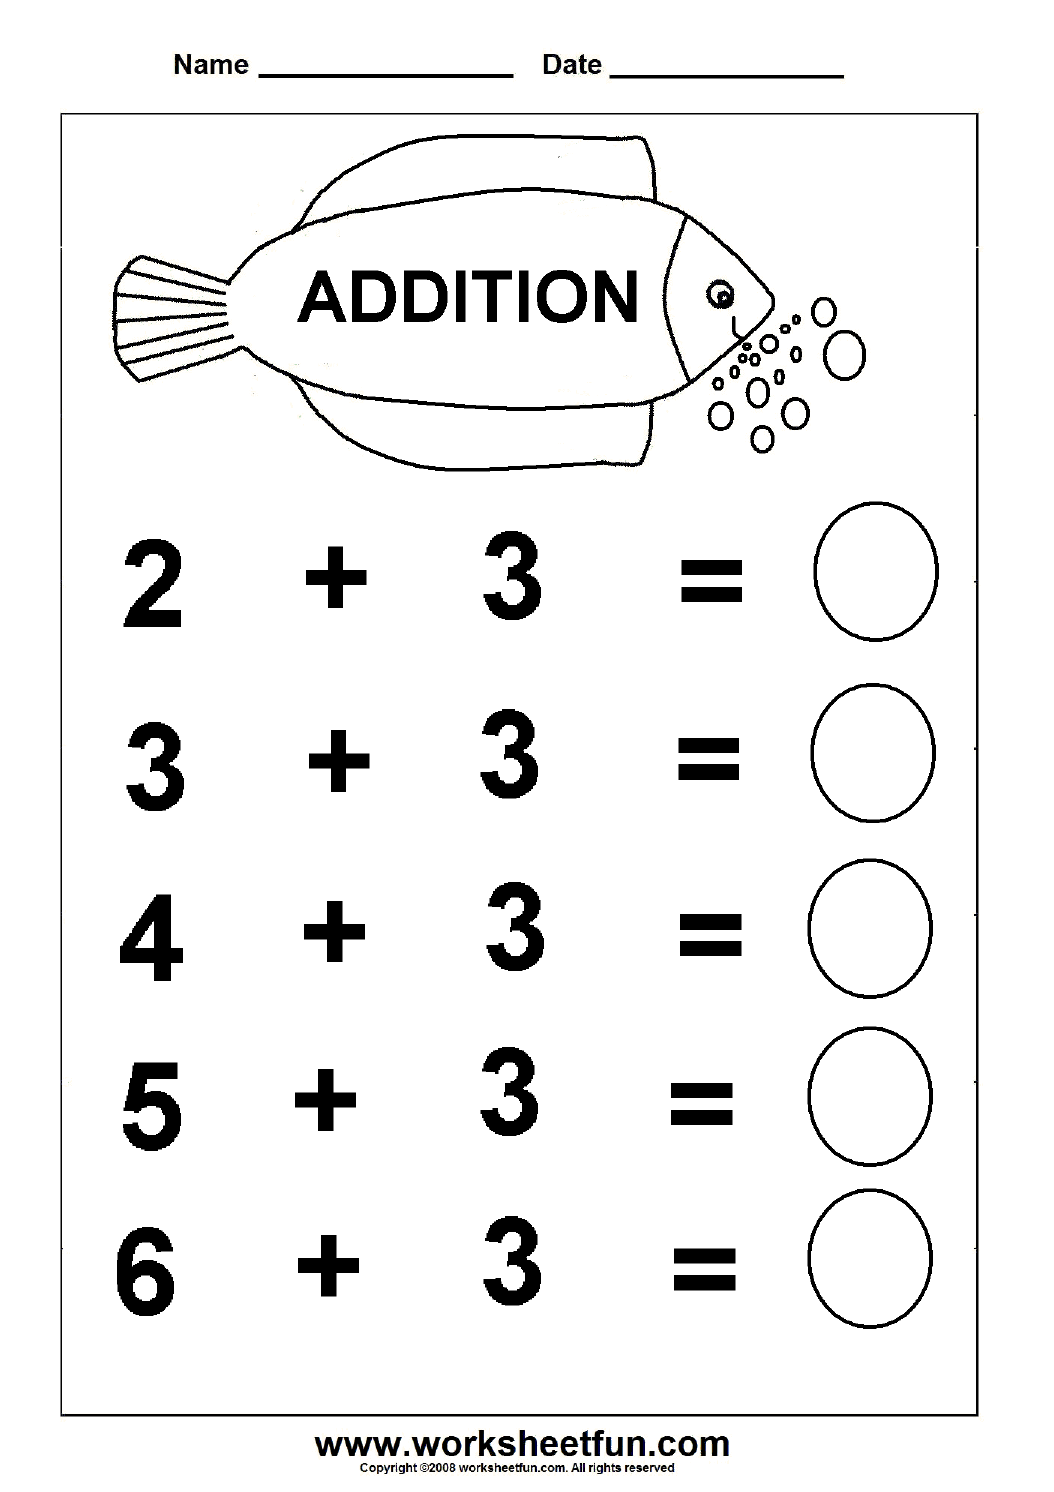 Worksheet Kindergarten Worksheets Addition beginner addition 6 kindergarten worksheets free first grade worksheets